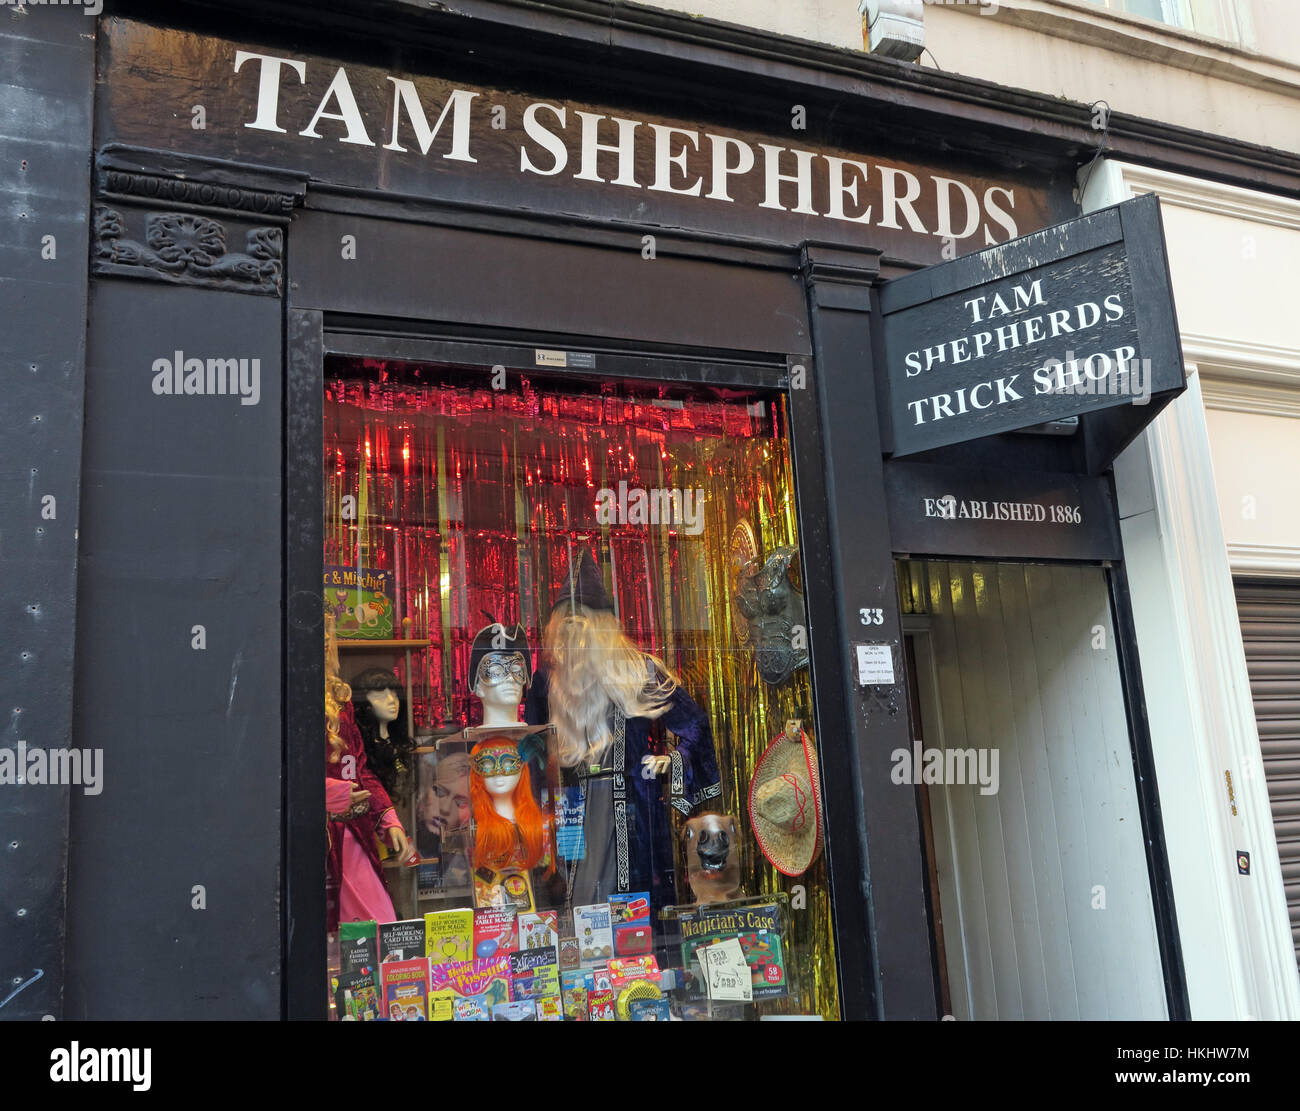 Tam Shepherds Trick Shop,Glasgow City Centre - Stock Image